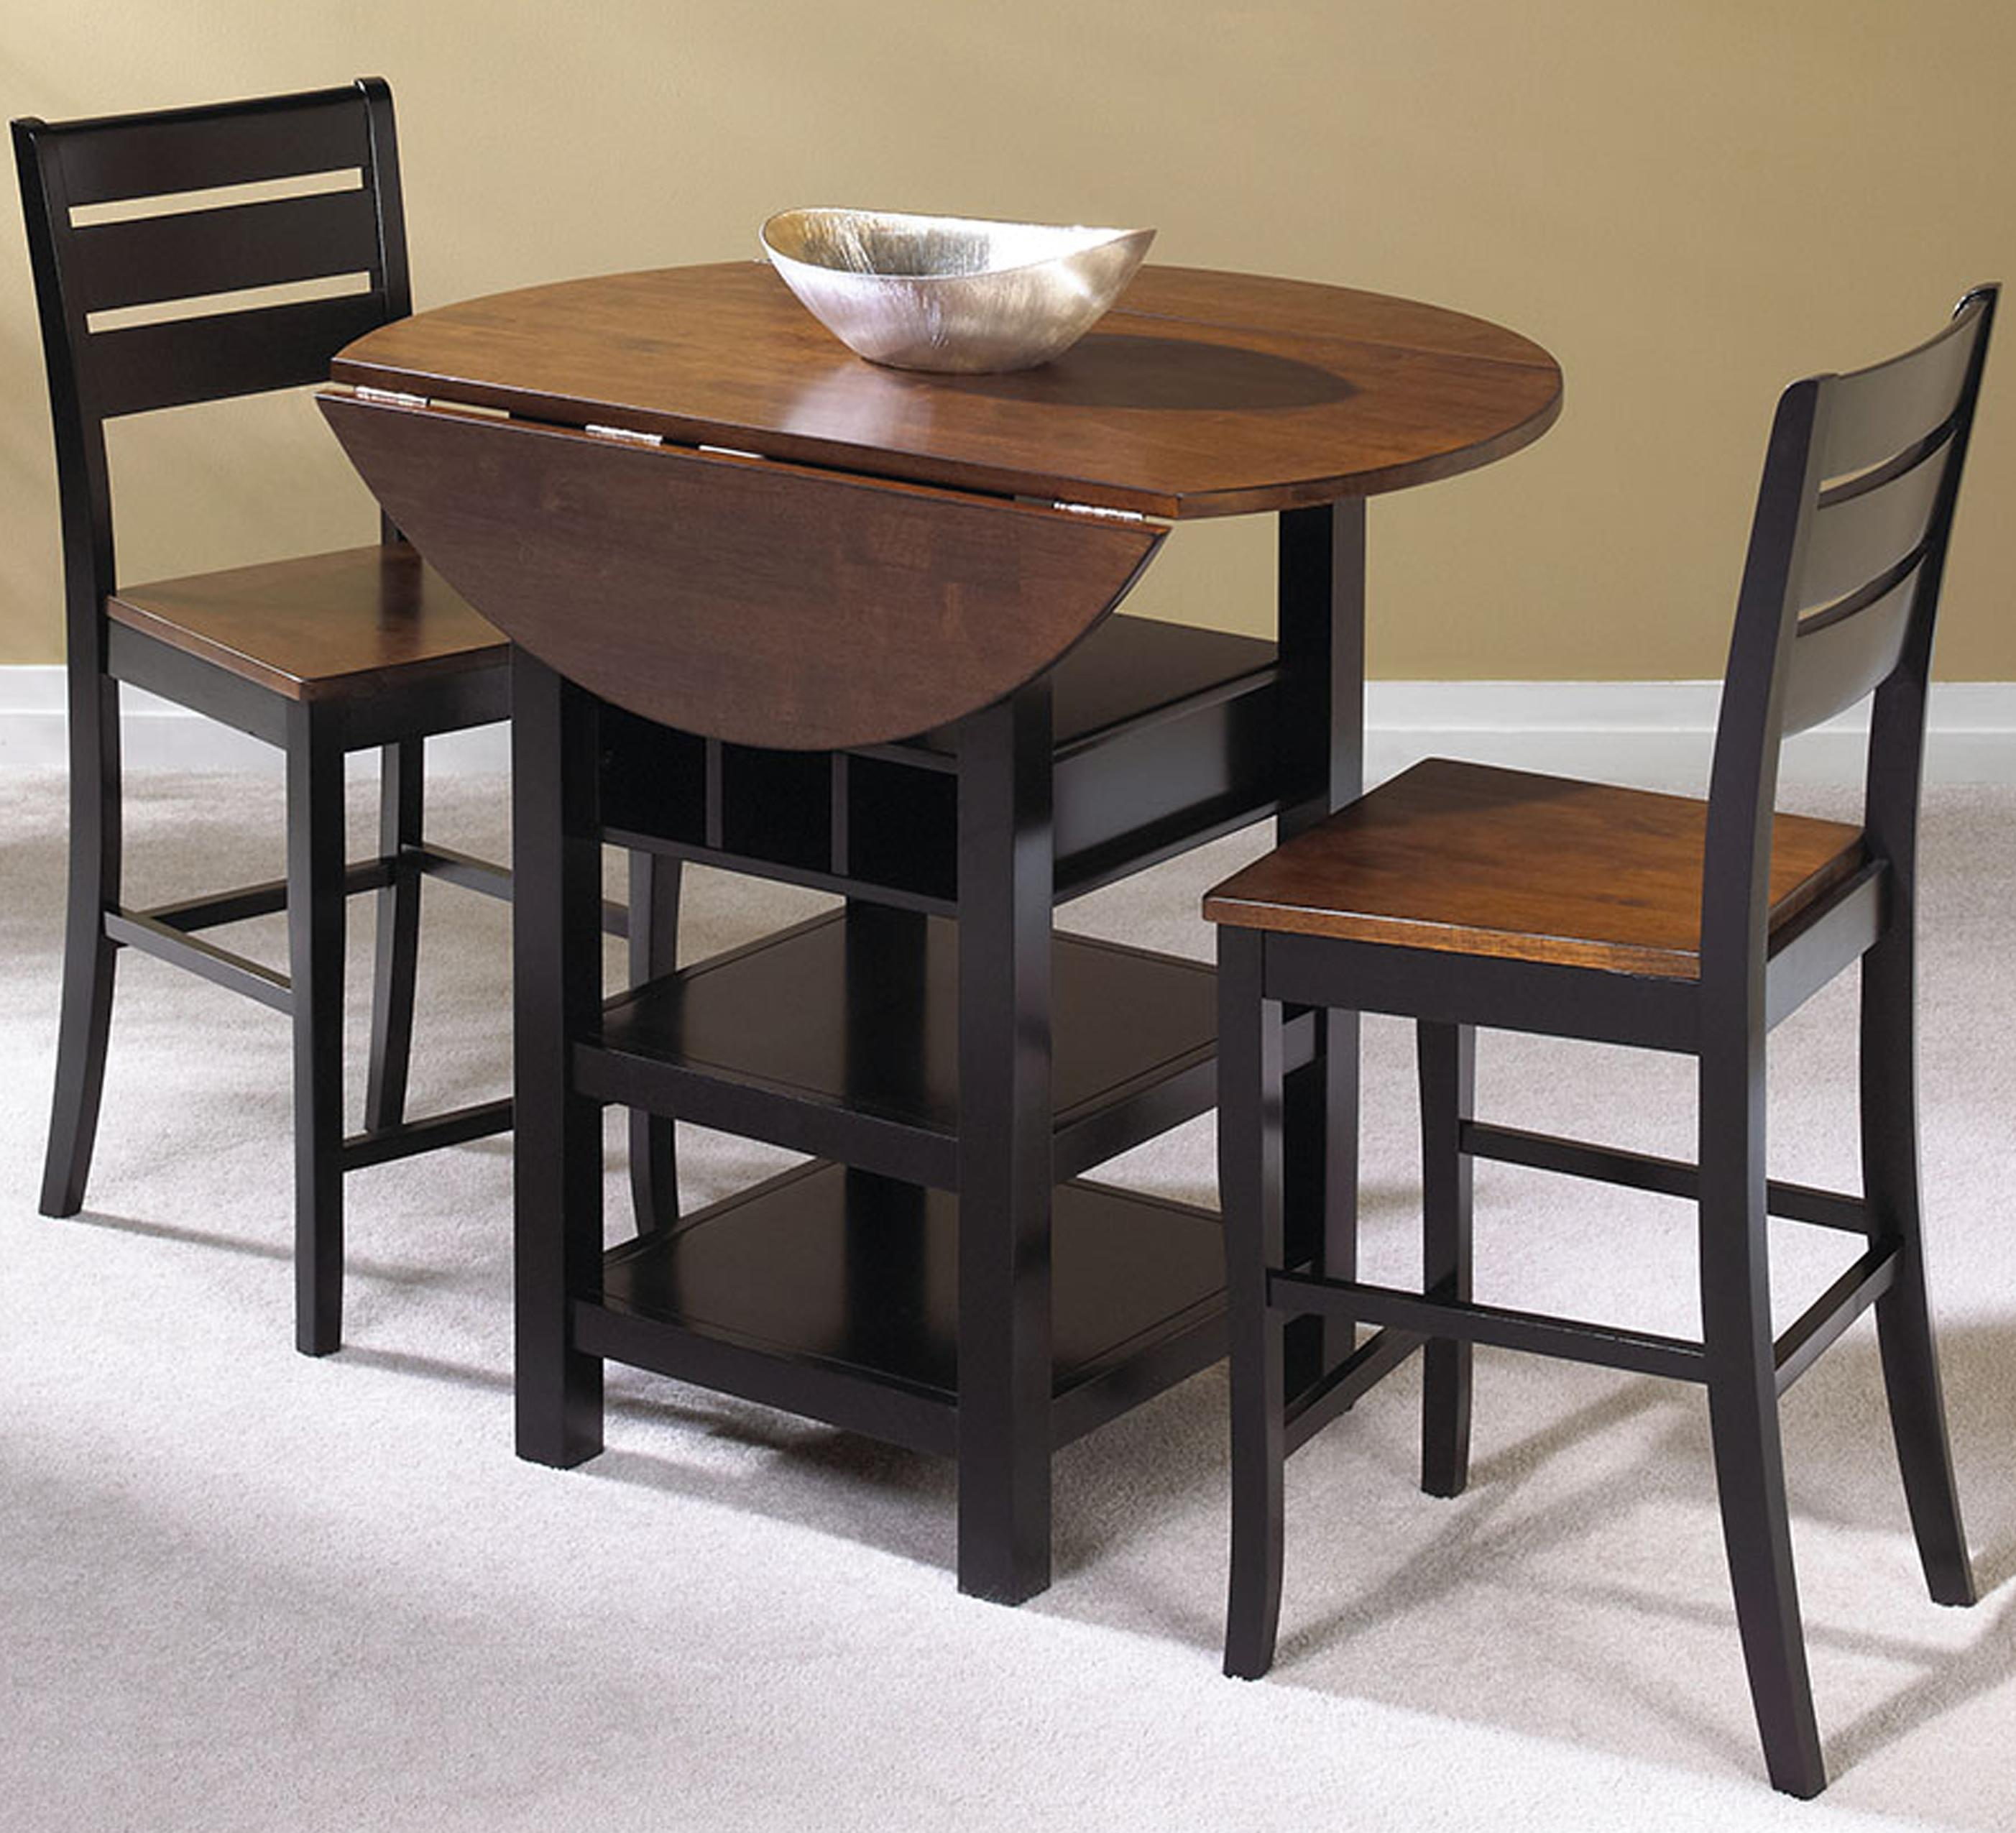 Delicieux Cramco, Inc Quincy 3 Piece Pub Table   Item Number: A7572 68+